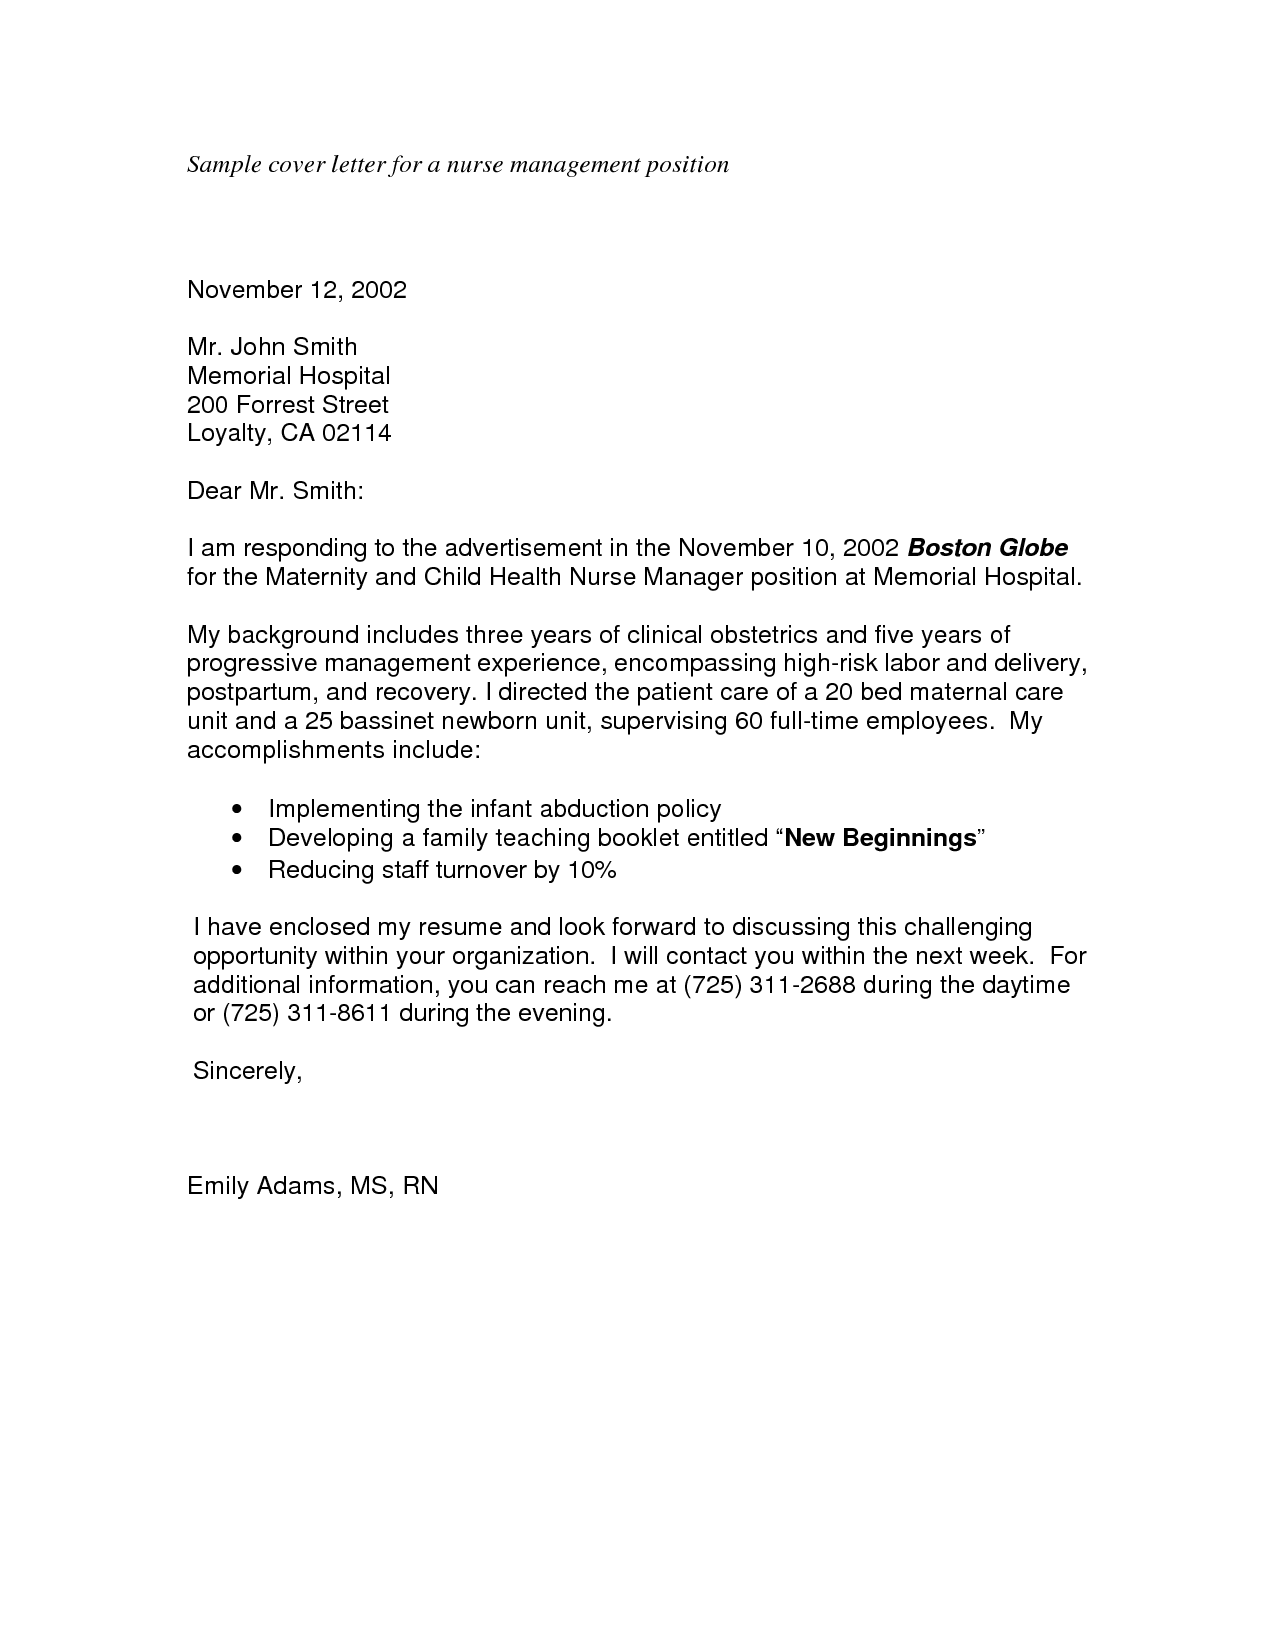 Sample Cover Letter For Applying A Job Obfuscata